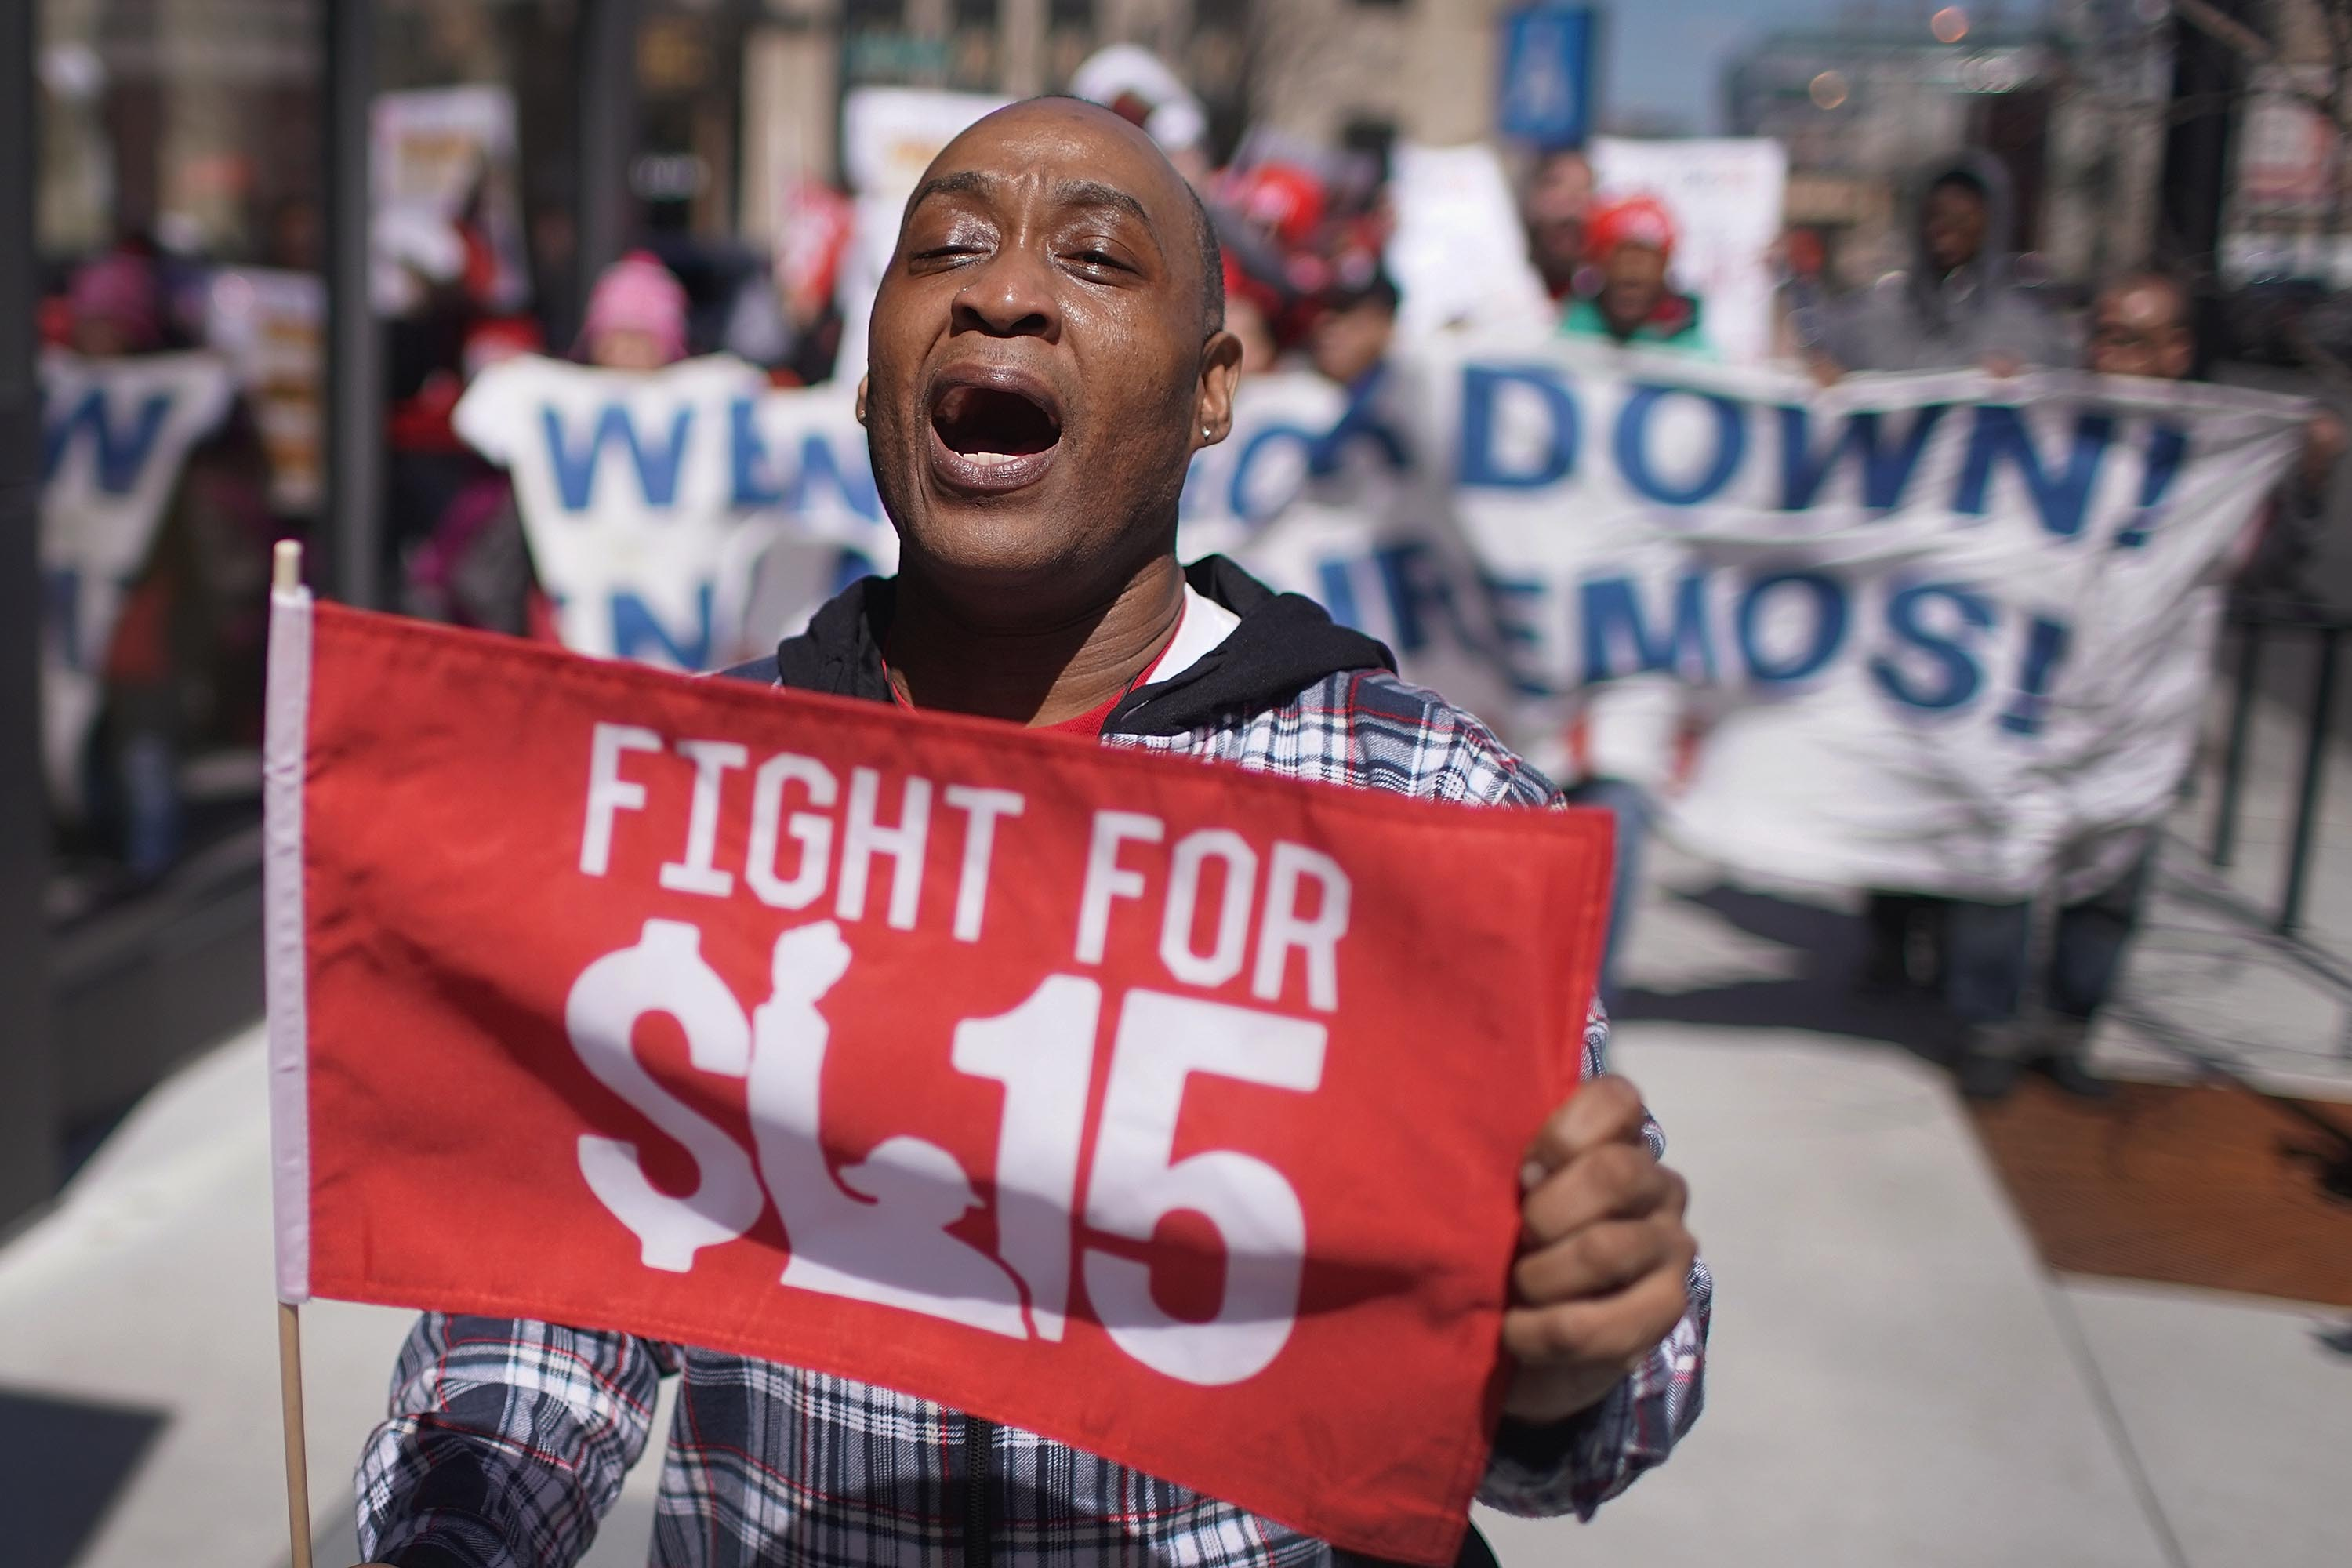 Missouri minimum wage will increase to $9.45 an hour on January 1